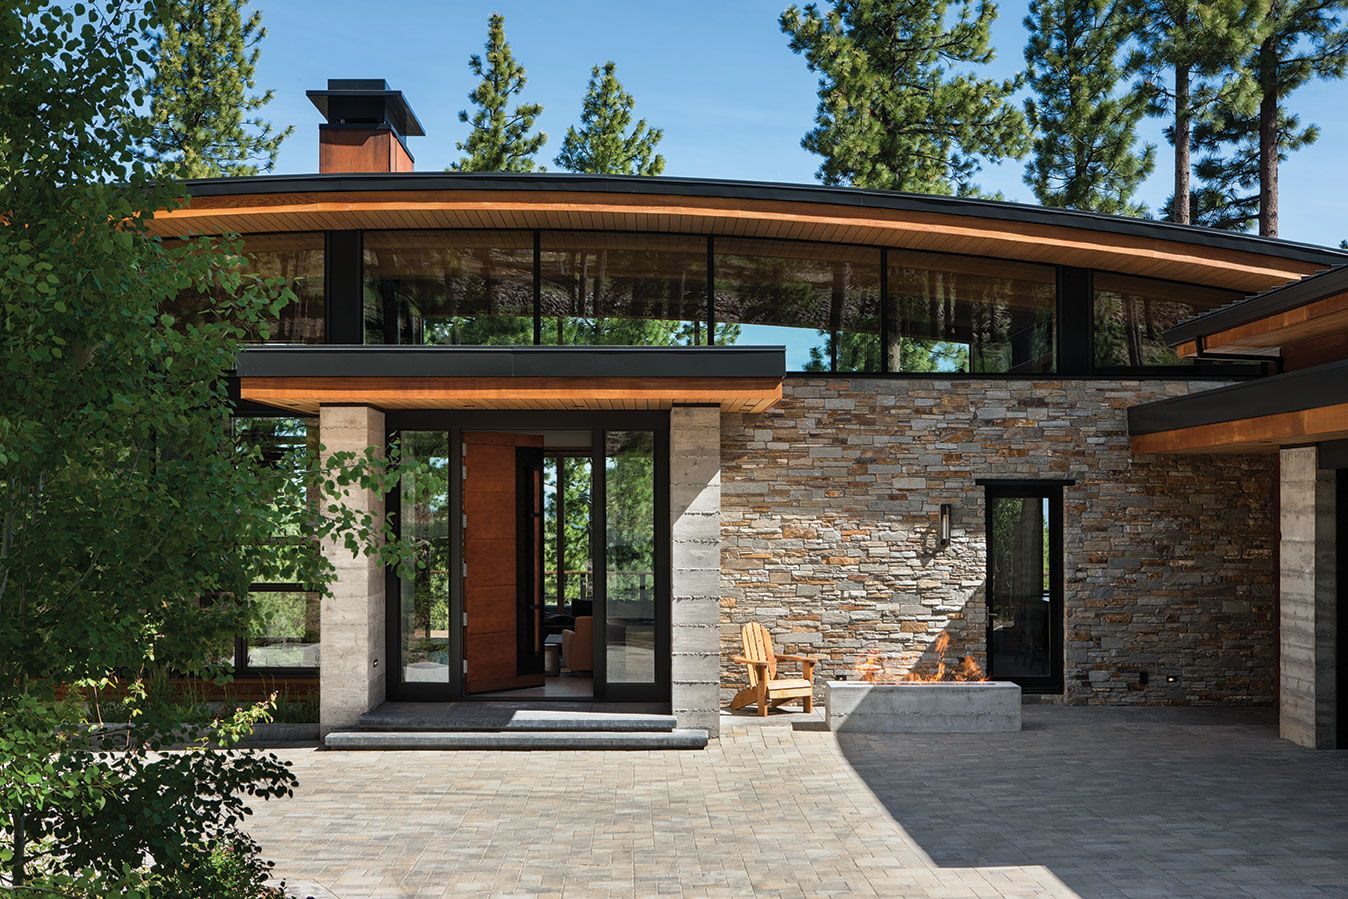 Martis camp home blends in yet stands out with a simple arc and martis camp home blends in yet stands out with a simple arc and geometric masses the malvernweather Image collections